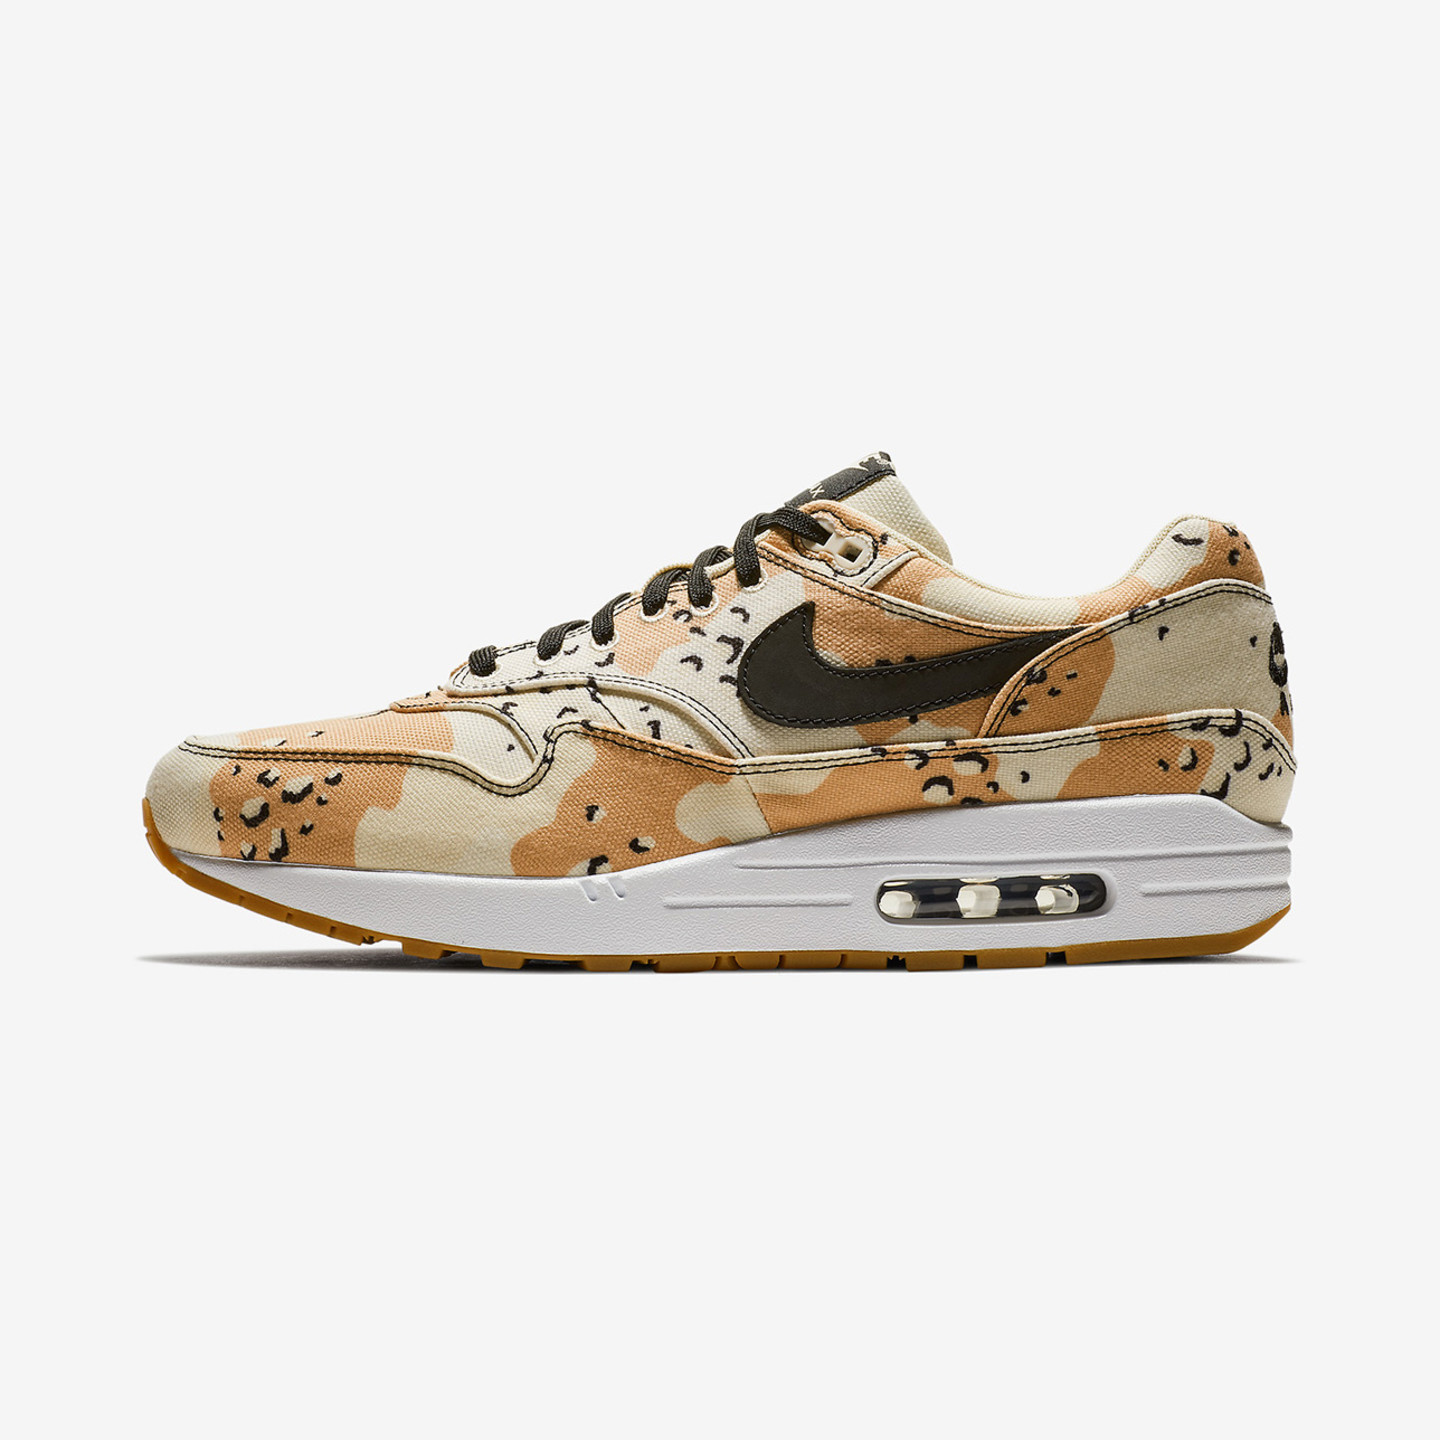 Nike Air Max 1 'Desert Camo' Beach / Black / Praline 875844-204